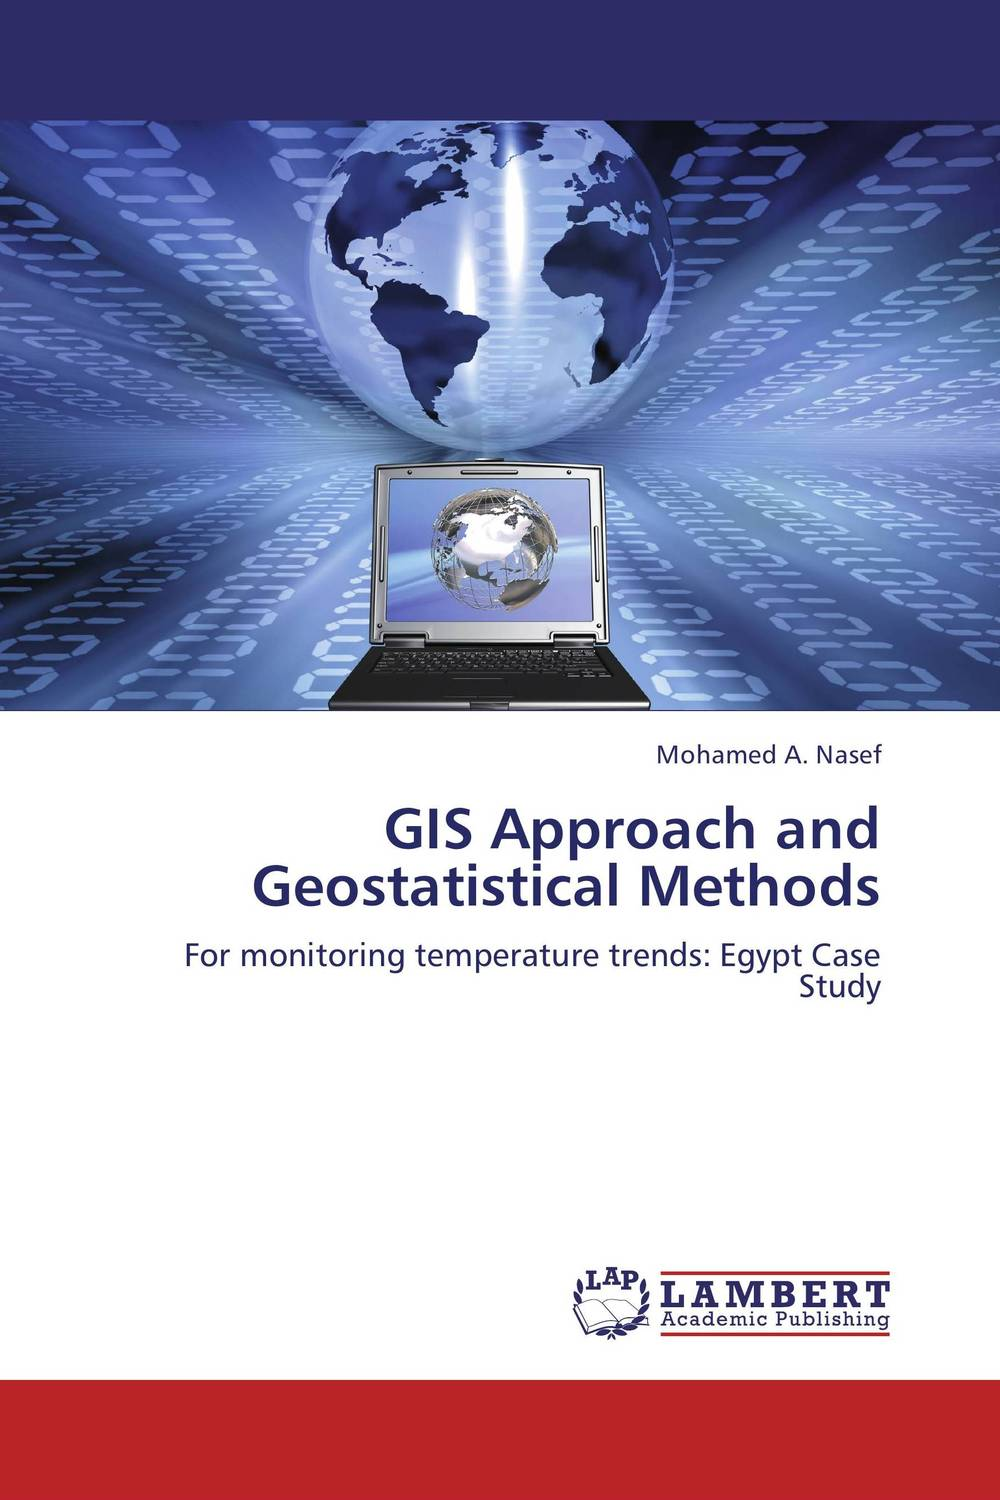 GIS Approach and Geostatistical Methods belousov a security features of banknotes and other documents methods of authentication manual денежные билеты бланки ценных бумаг и документов